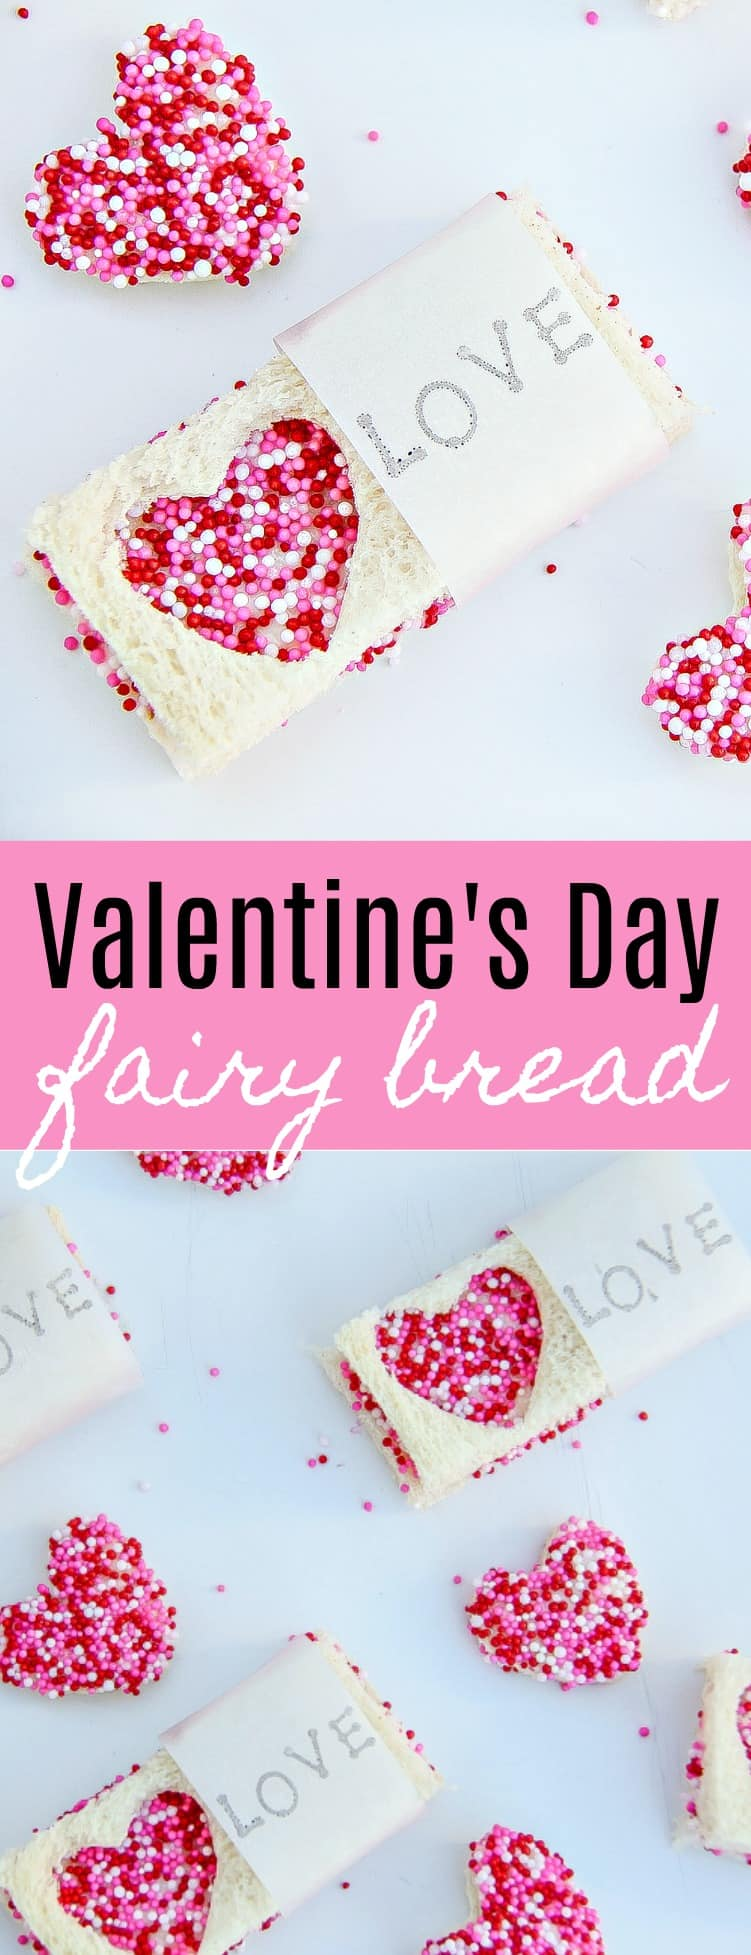 Valentine's Day Fairy Bread - How to make easy Valentine's Day fairy bread treats for kids. #ValentinesDay #Treat